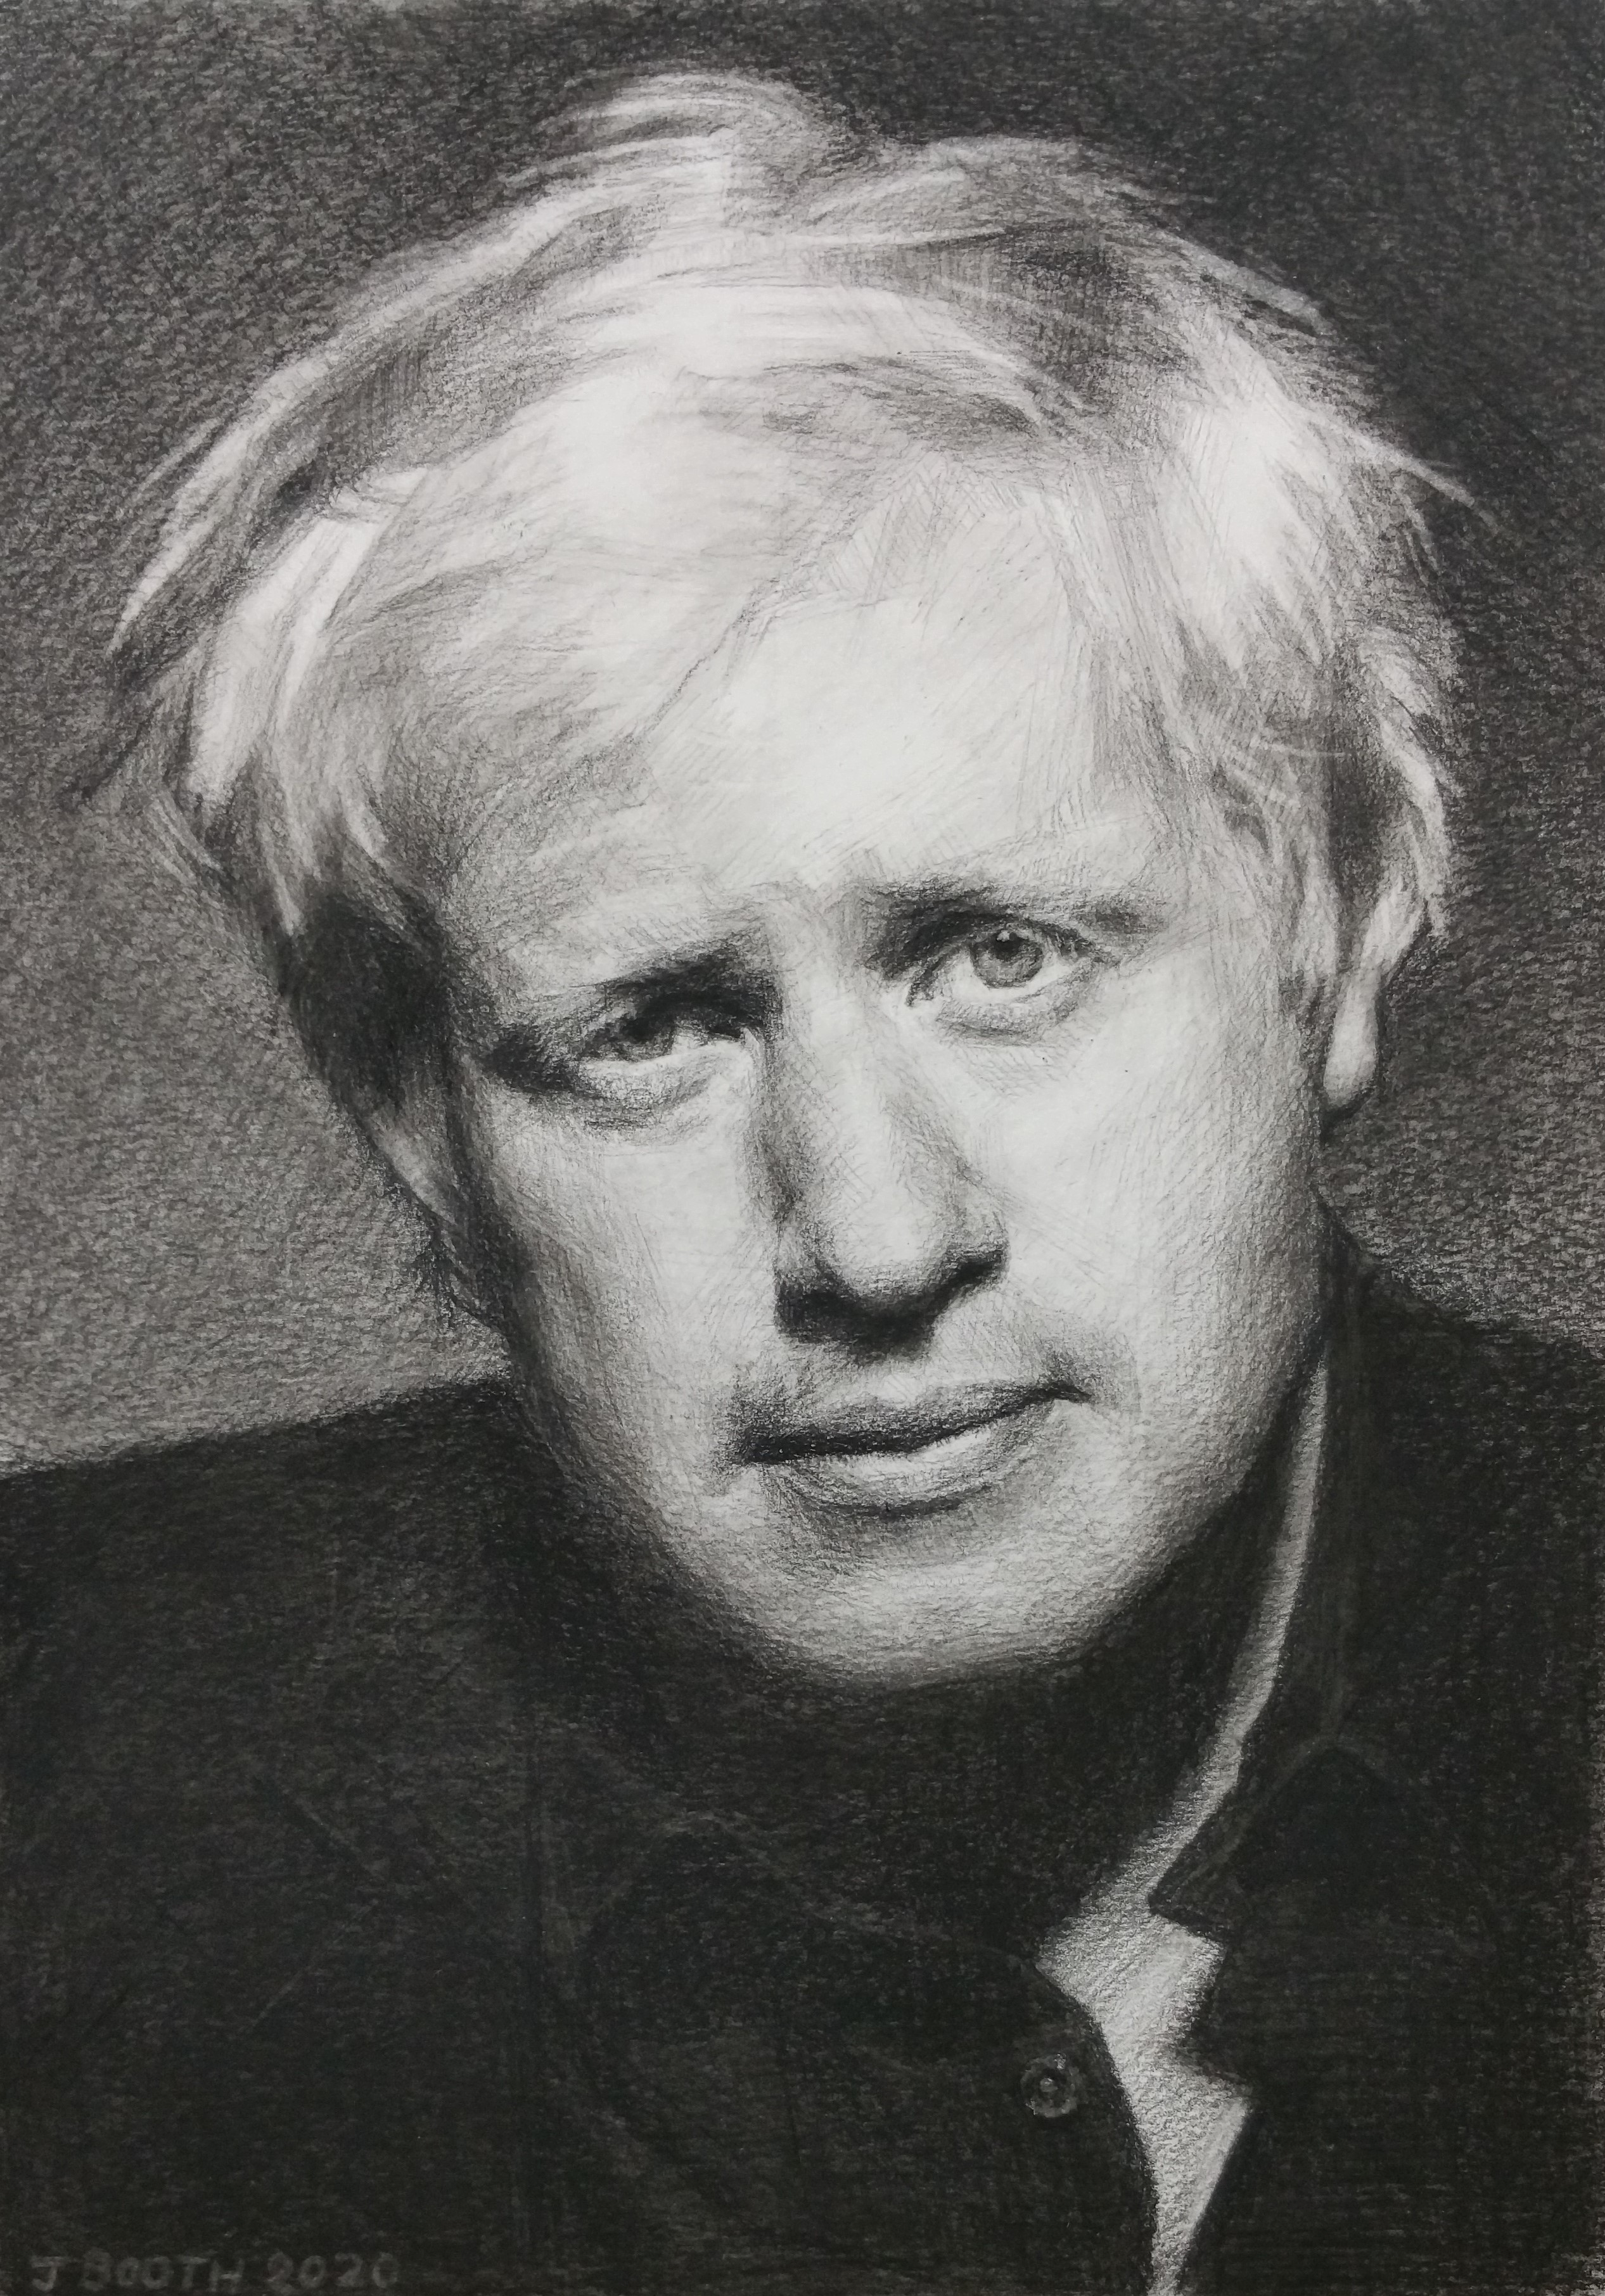 """Boris Johnson"", Charcoal on Bristol board, 20x30cm, SOLD"